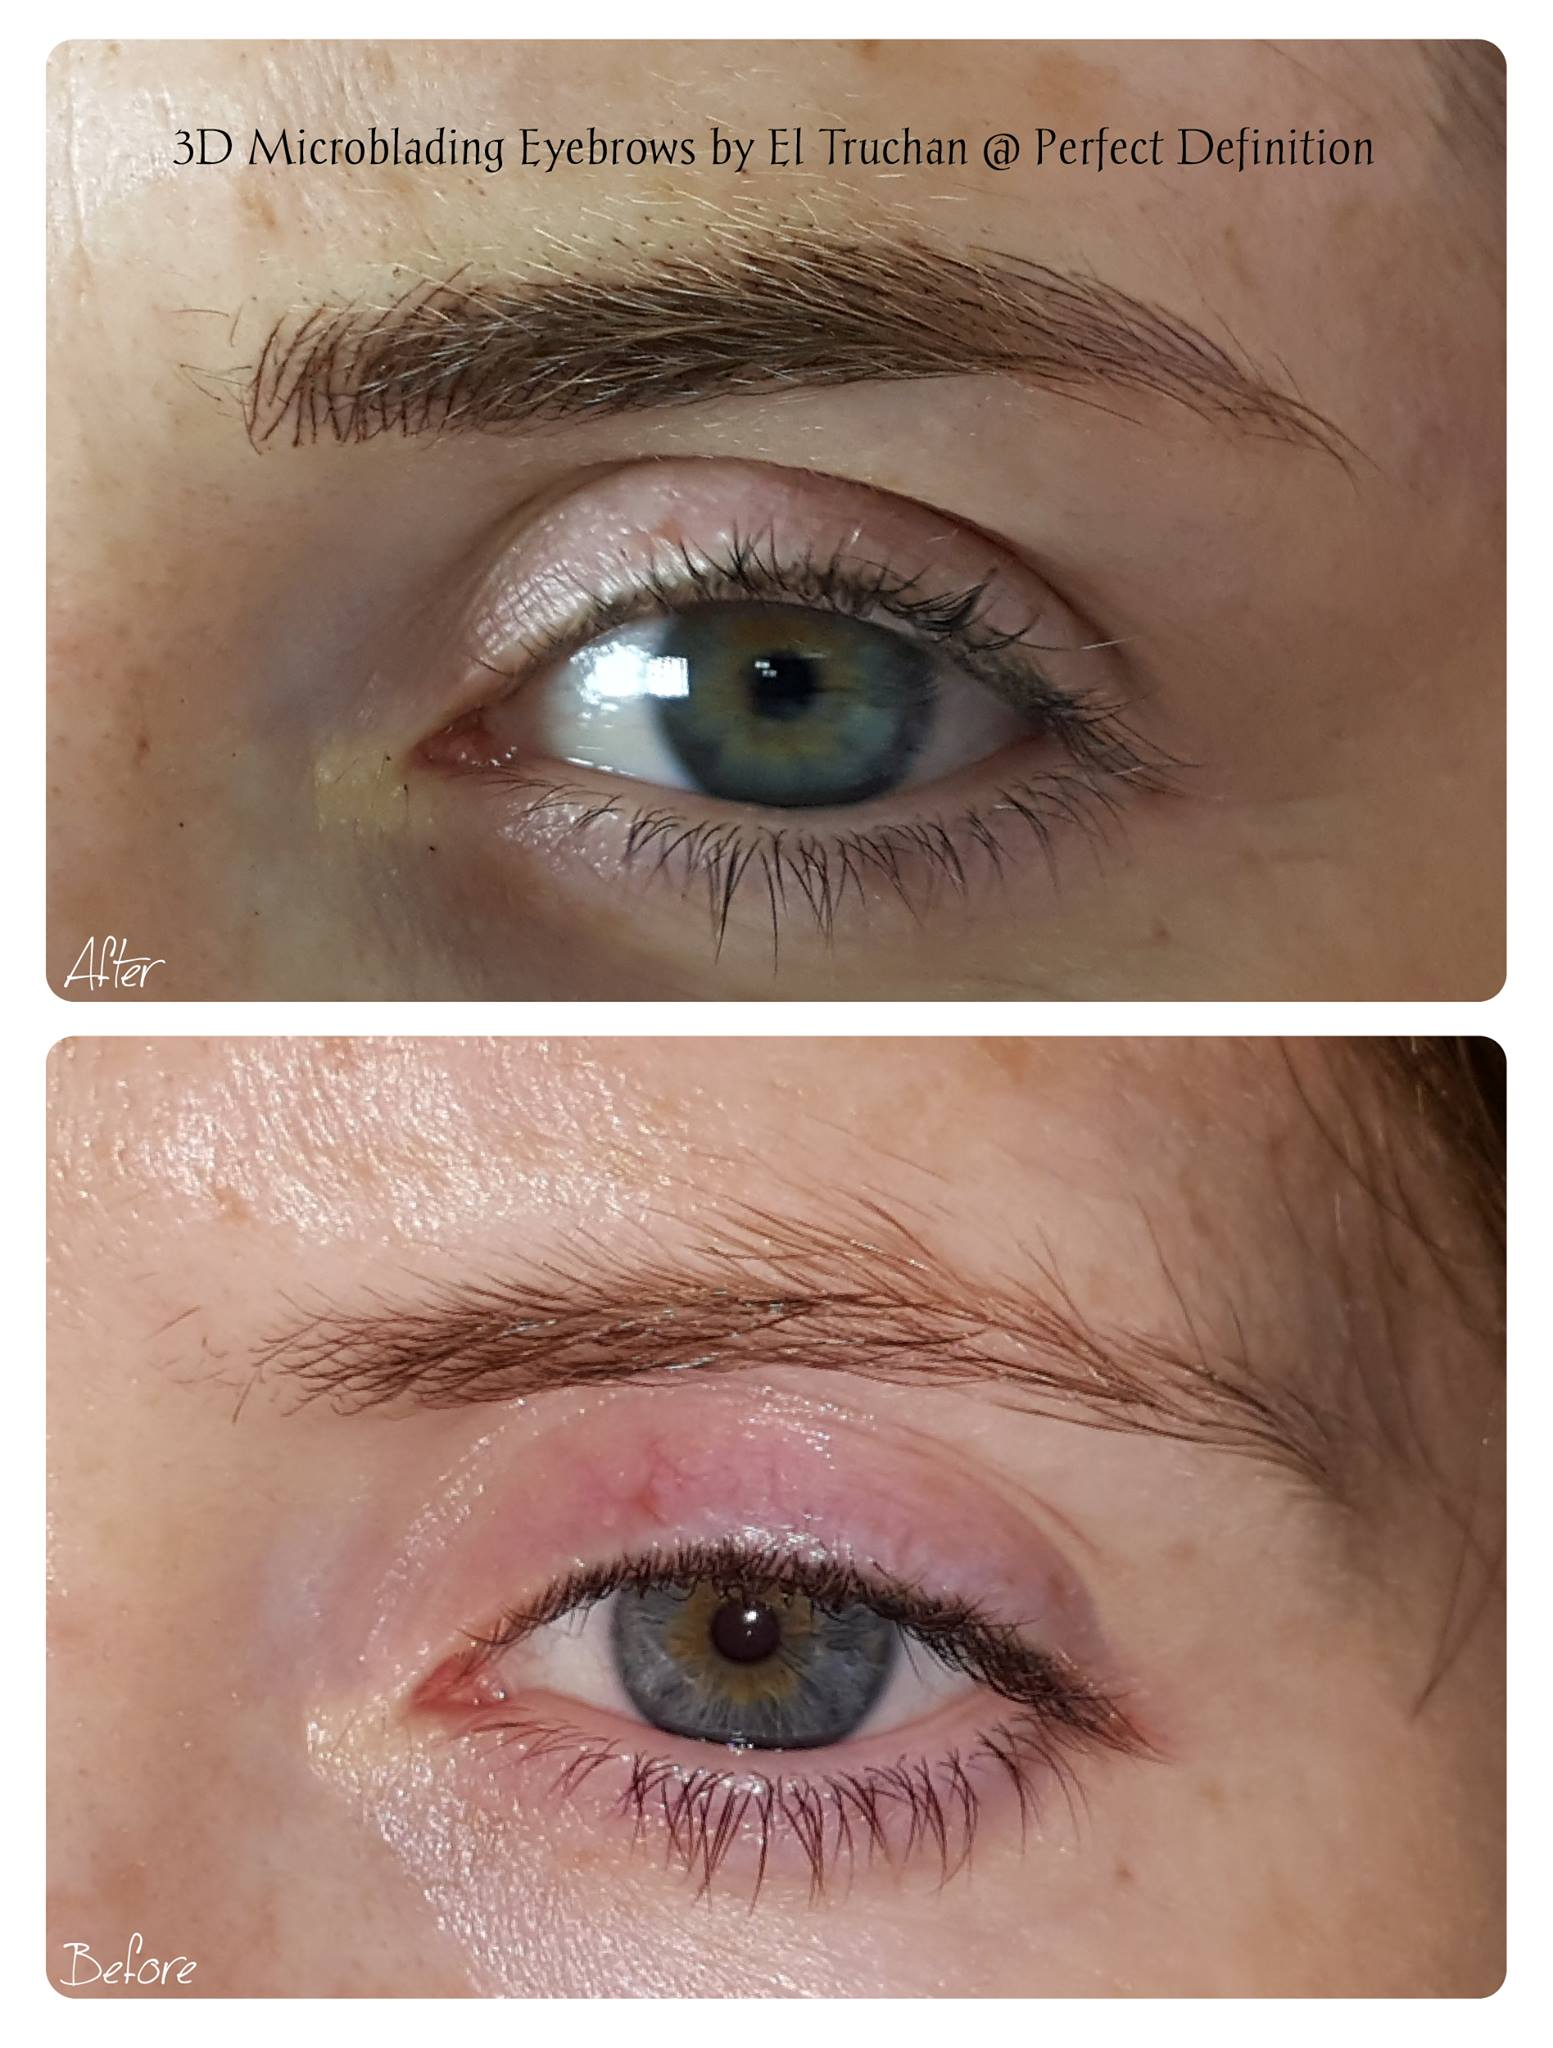 3D Microblading Eyebrows by El Truchan